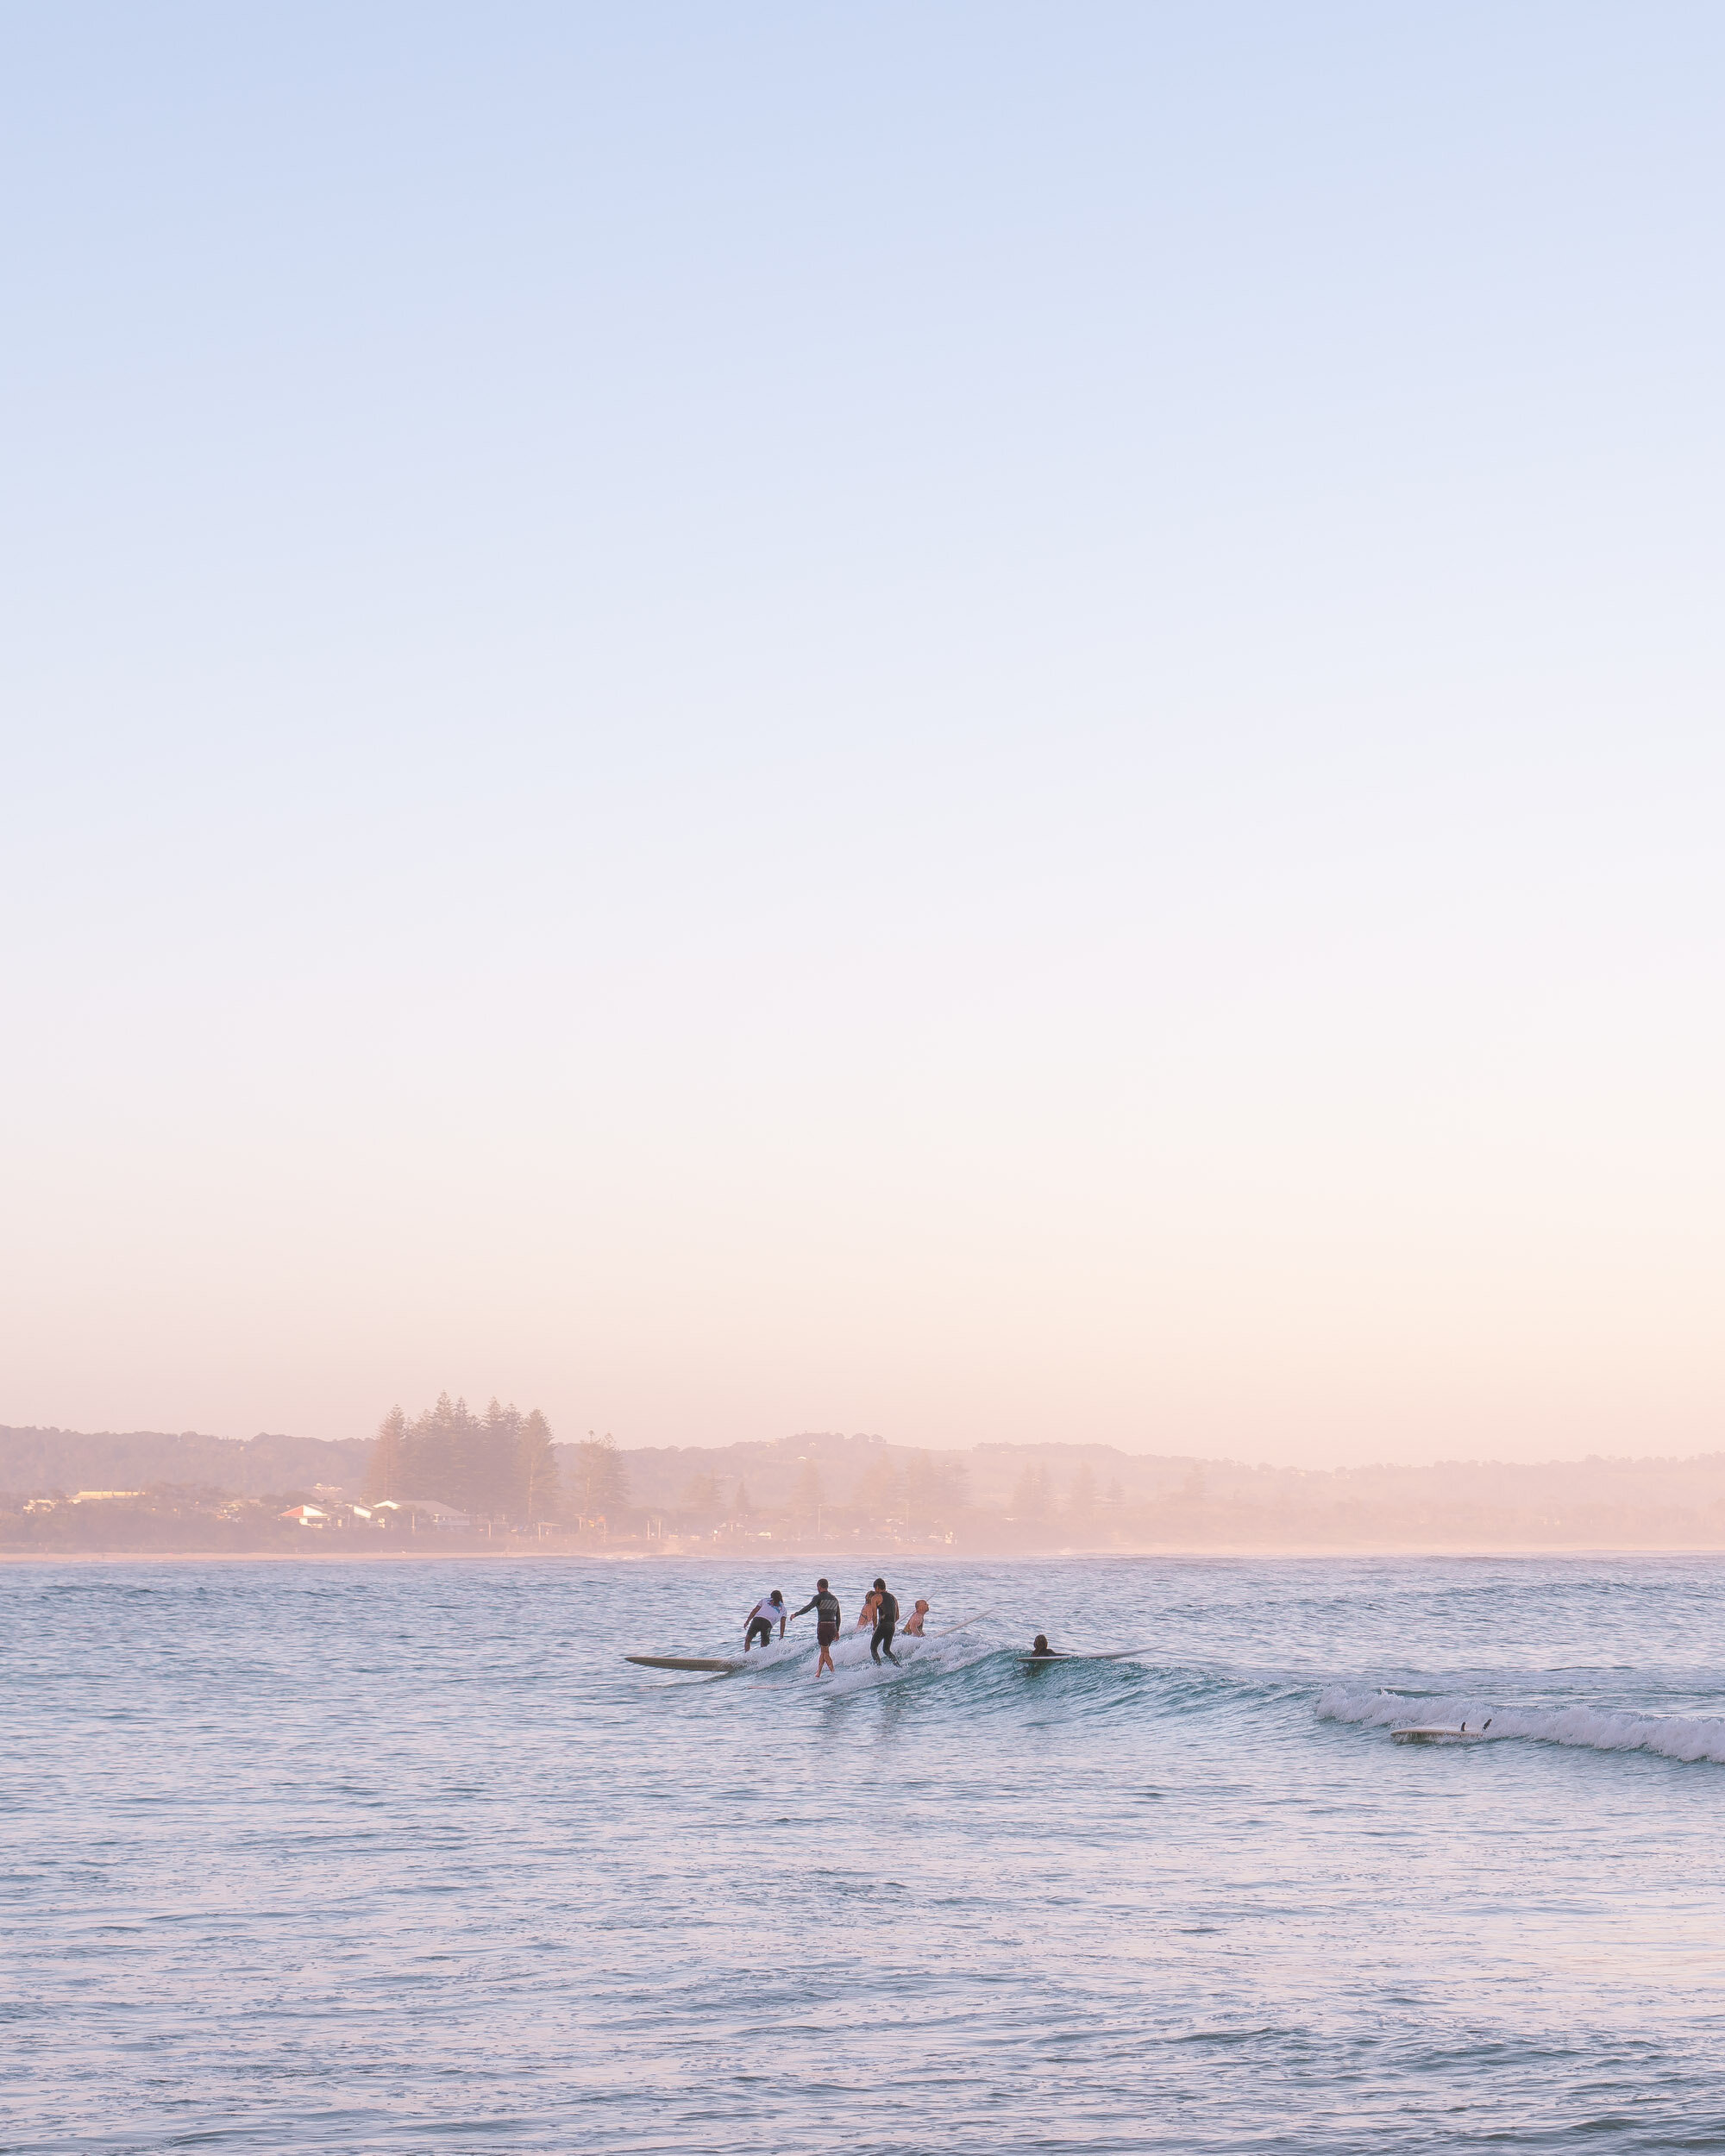 Surfers sharing the breaks at The Pass, Byron Bay